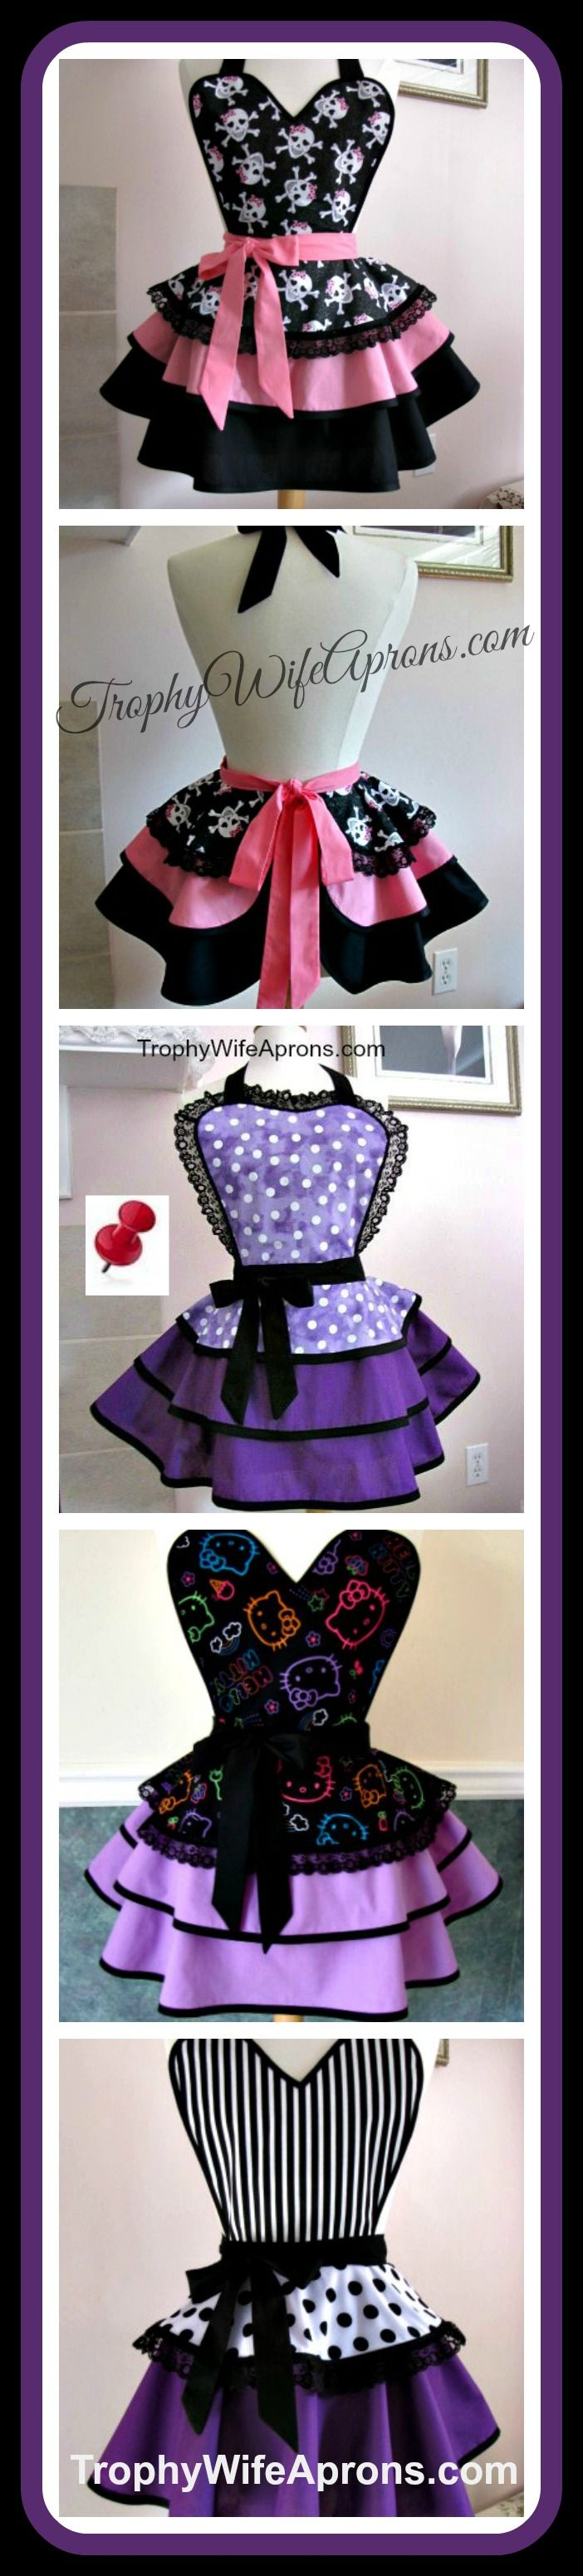 ☀  Vintage inspired sexy aprons - flirty aprons - Custom made or ready made hostess aprons -Sizes T2 to adult 4XL #hostessaprons #retroaprons #sexyaprons☀ ☀ I regularly giveaway a FREE Funky Hostess Apron ☀ ☀  CLICK here for details==> www.facebook.com/TrophyWifeAprons